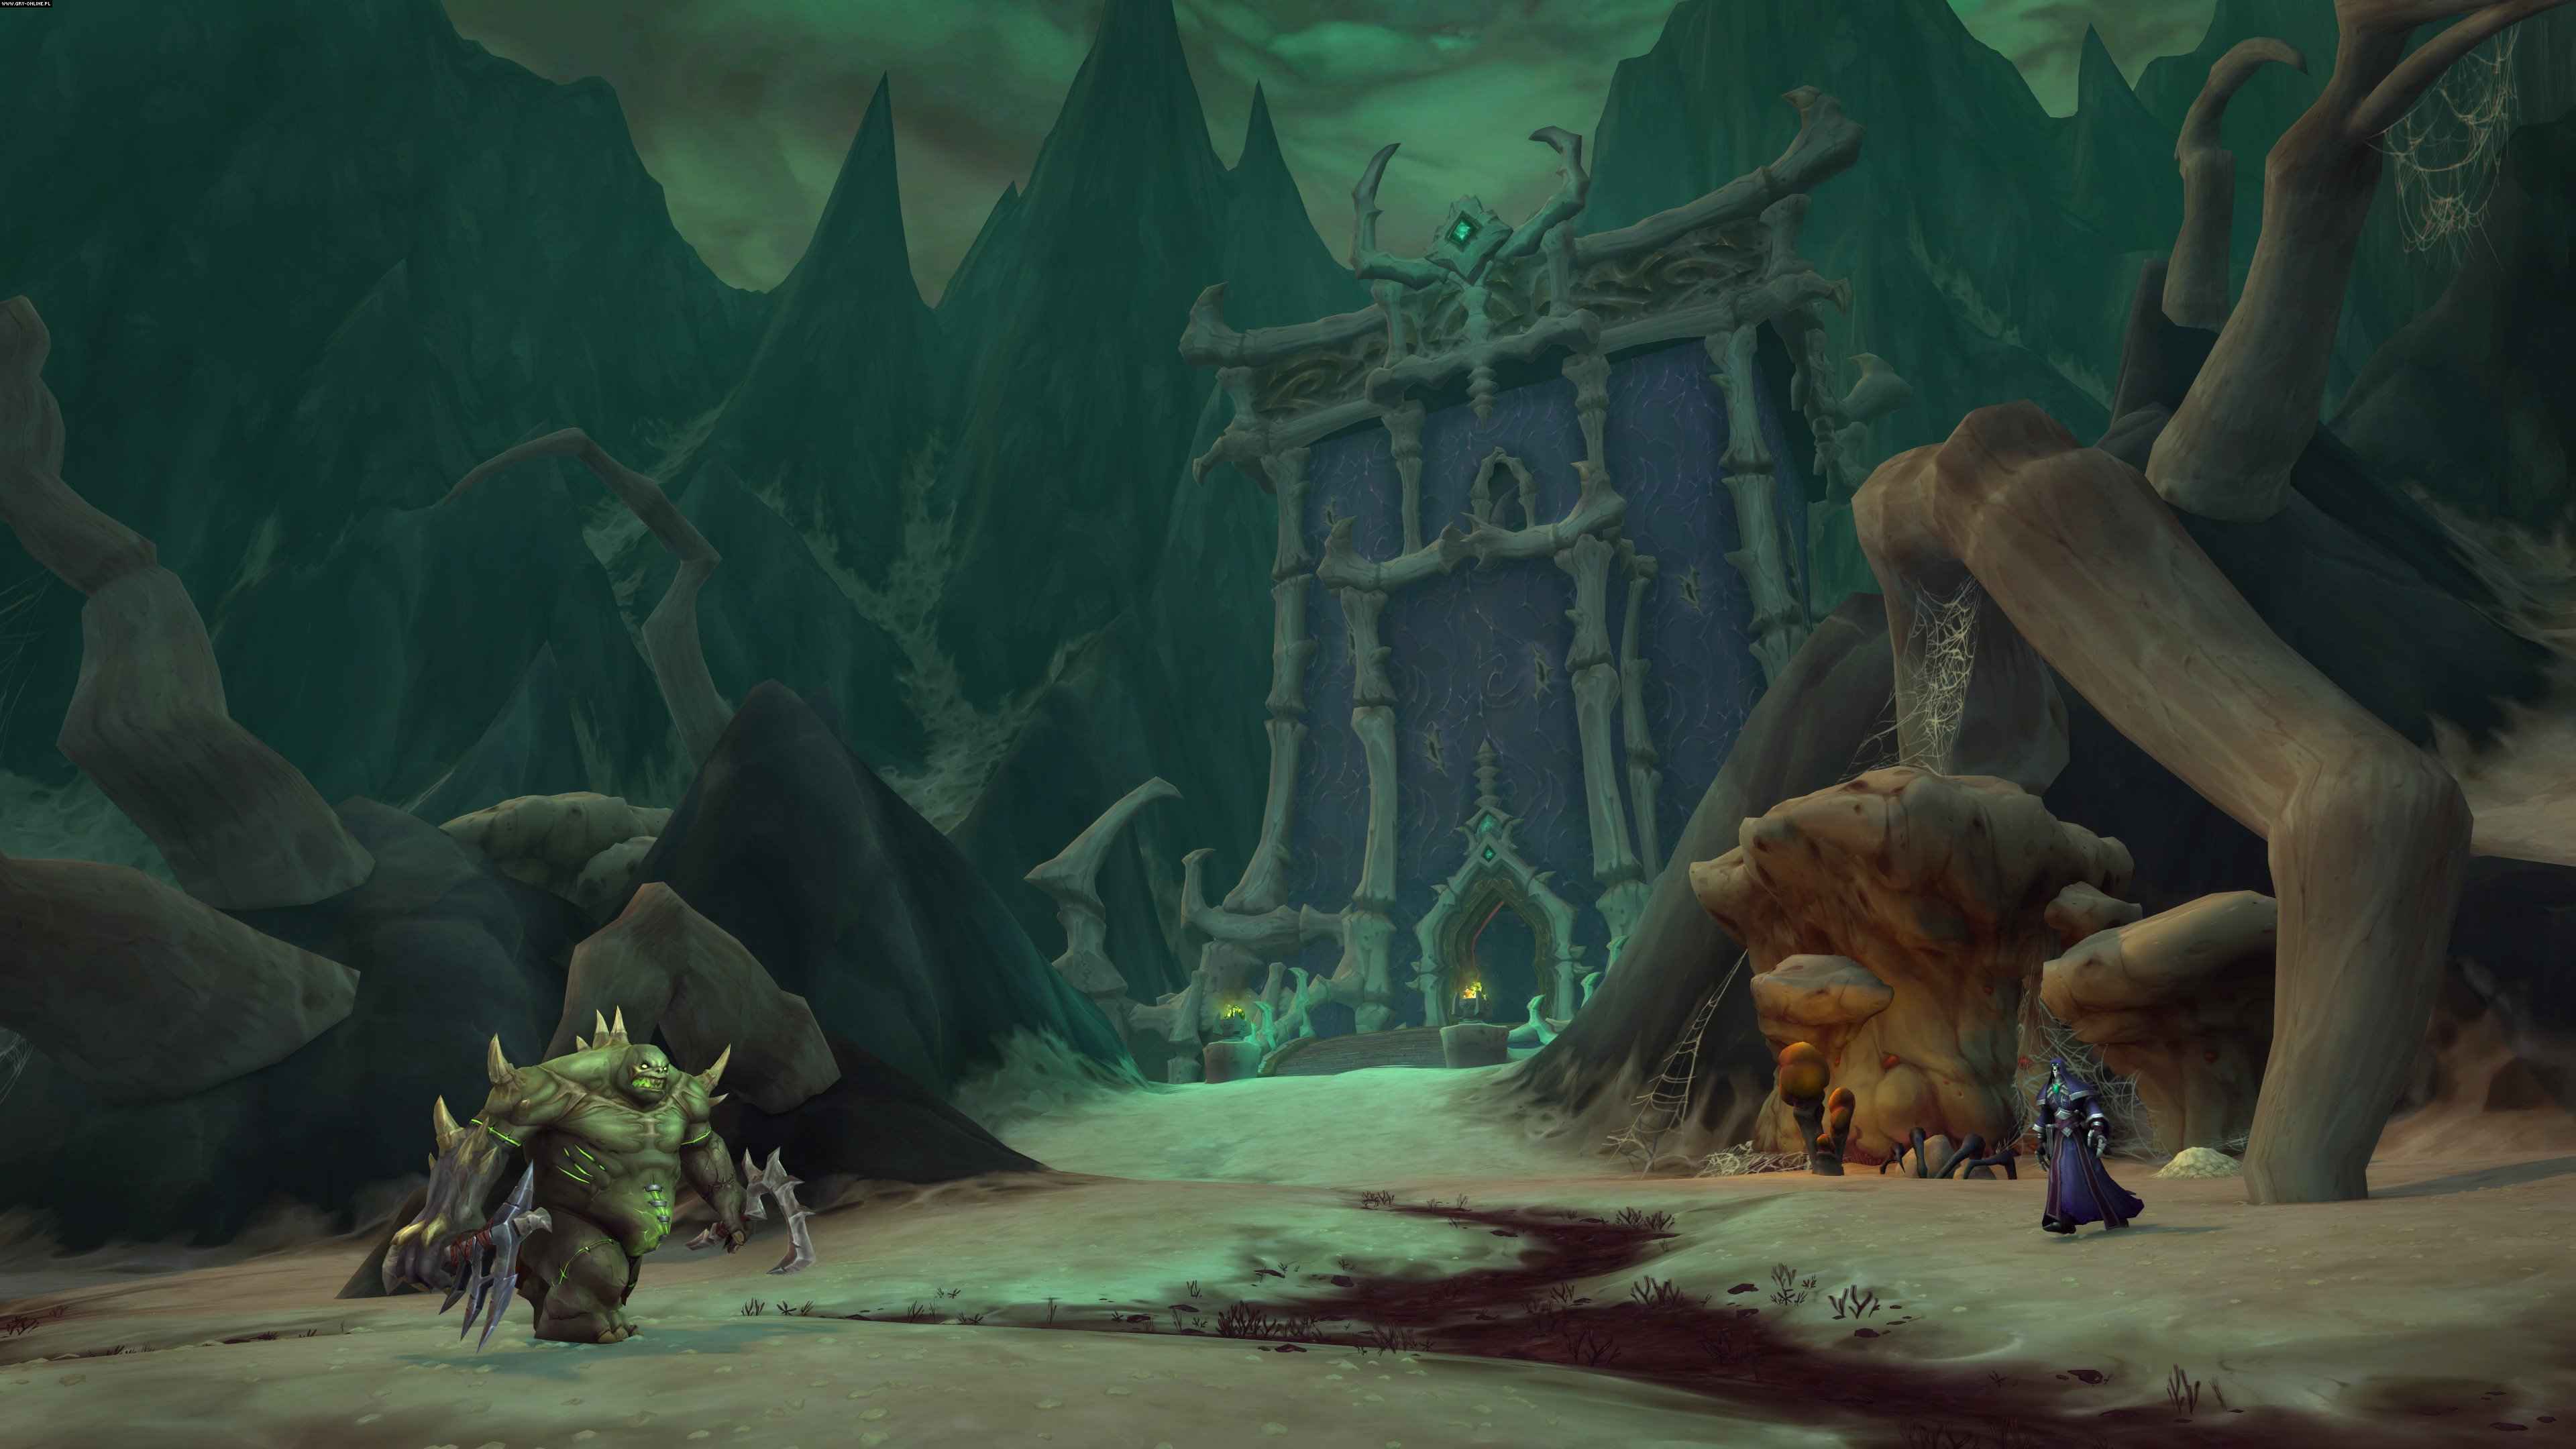 World of Warcraft: Shadowlands PC Games Image 9/12, Blizzard Entertainment